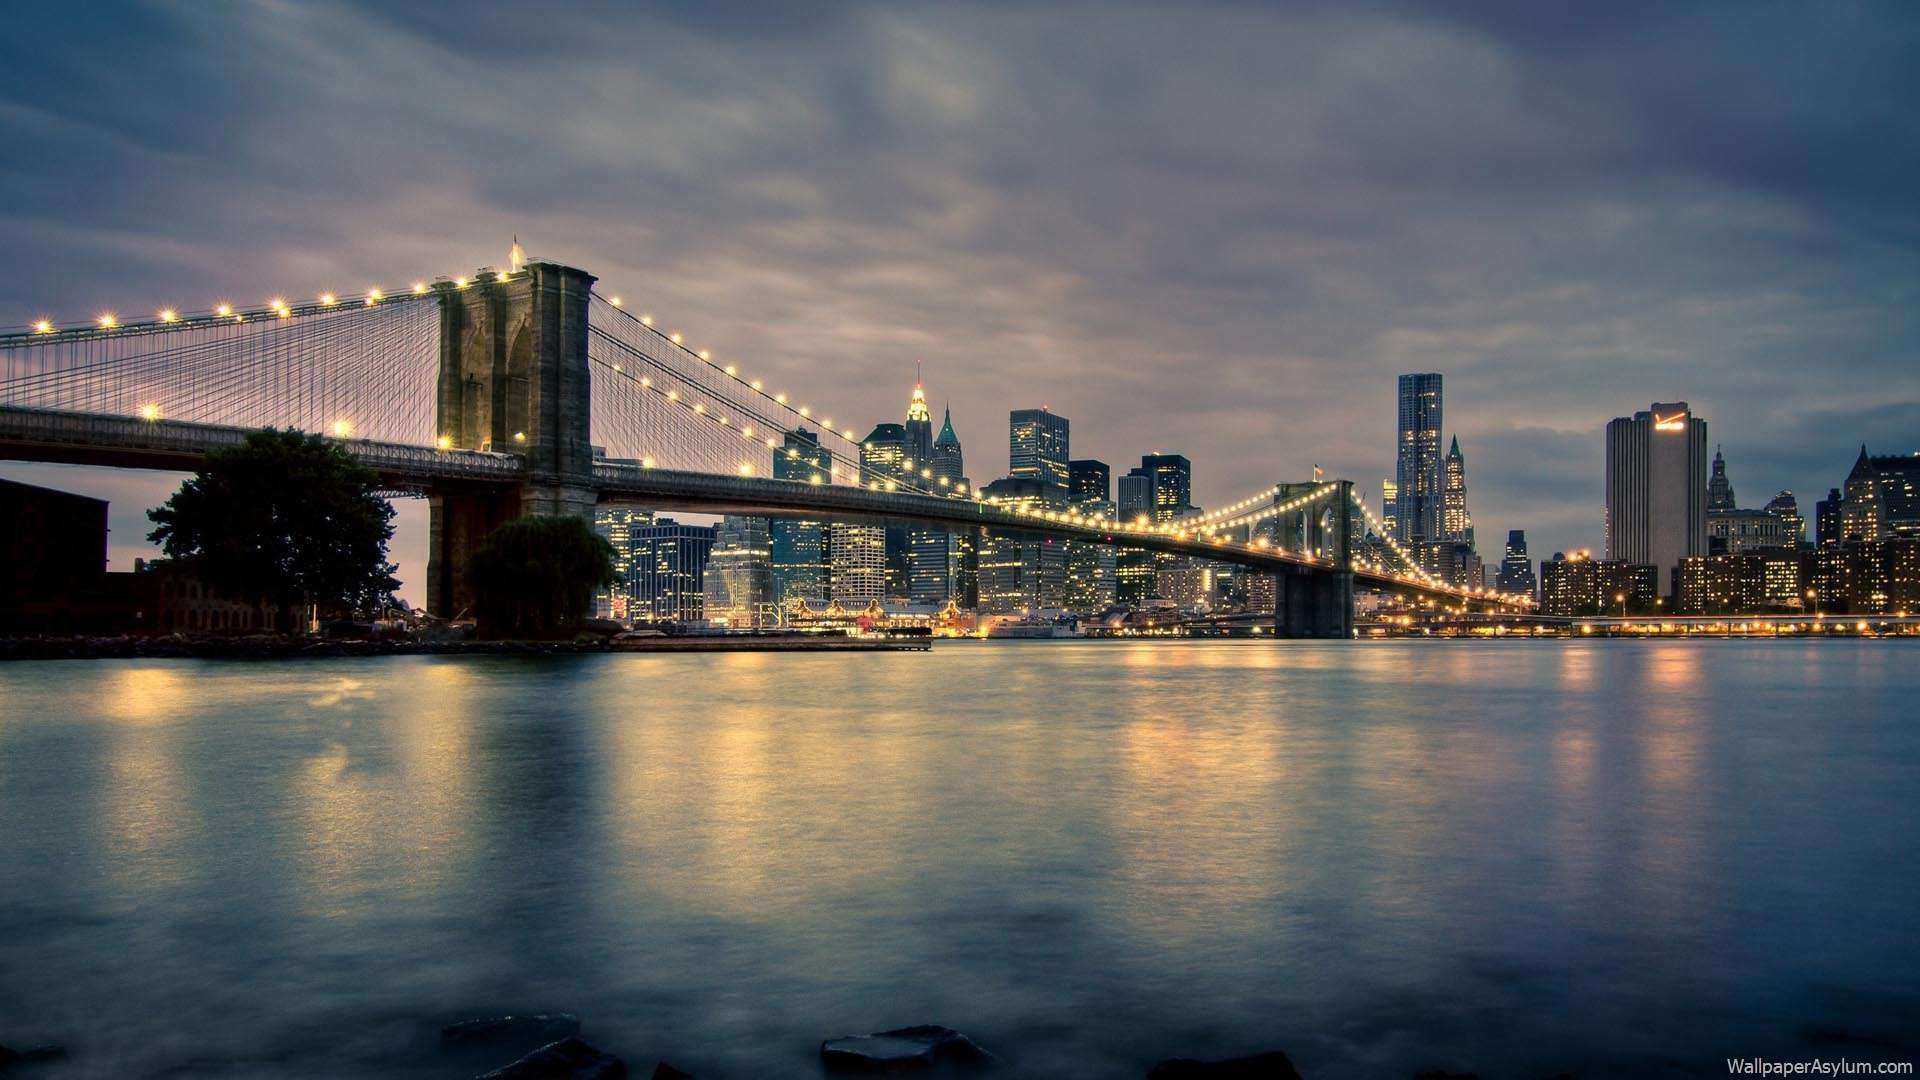 ... wallpaper of the week!!! Brooklyn Bridge | Brooklyn Bridge wallpapers